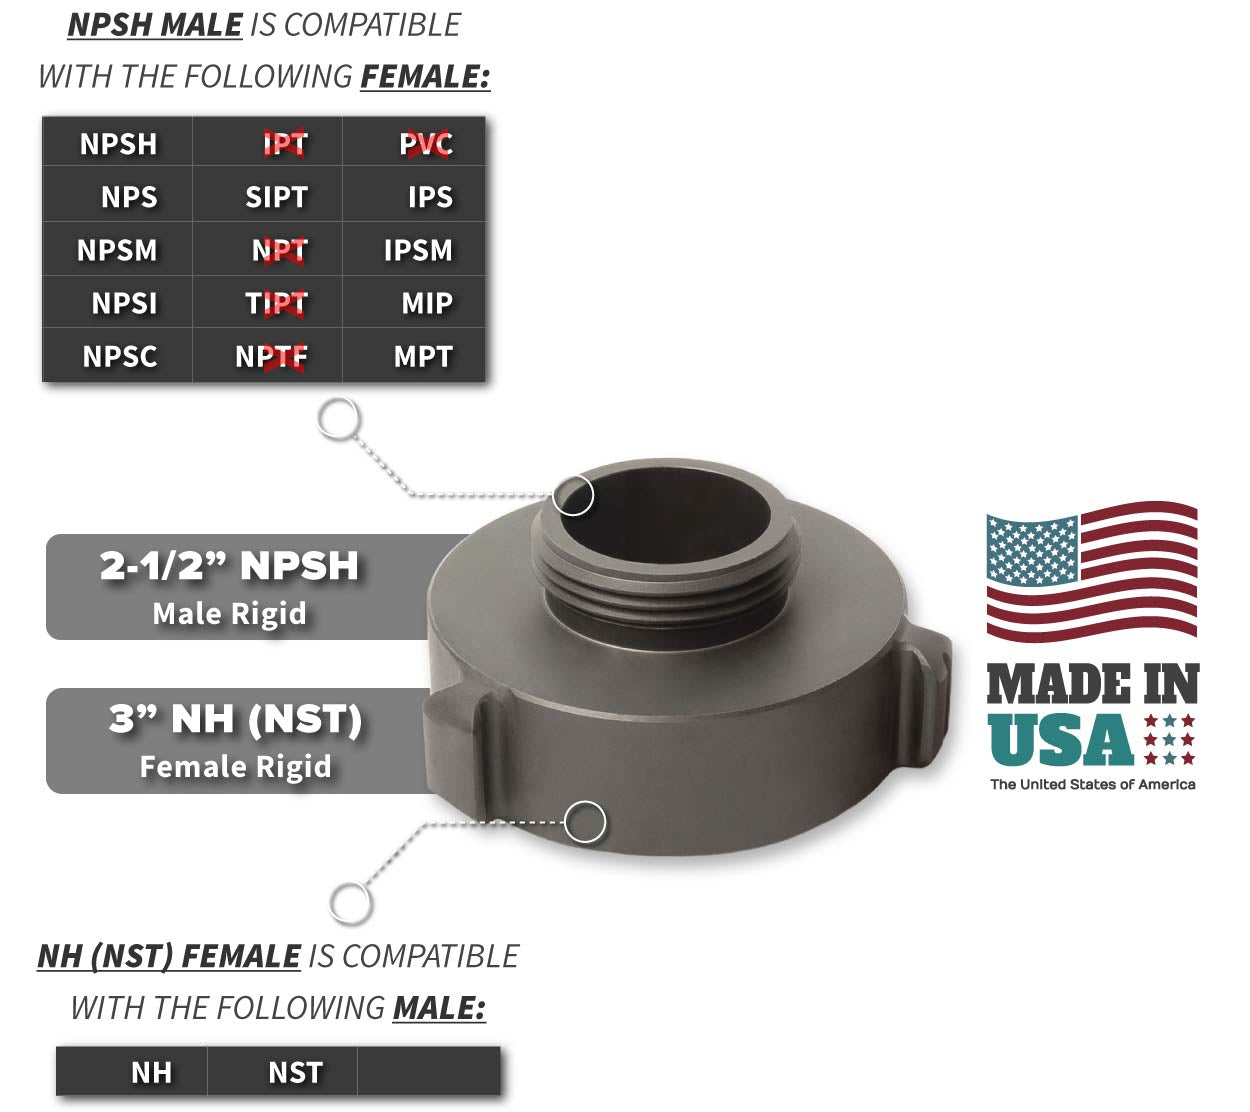 3 Inch NH-NST Female x 2.5 Inch NPSH Male Compatibility Thread Chart